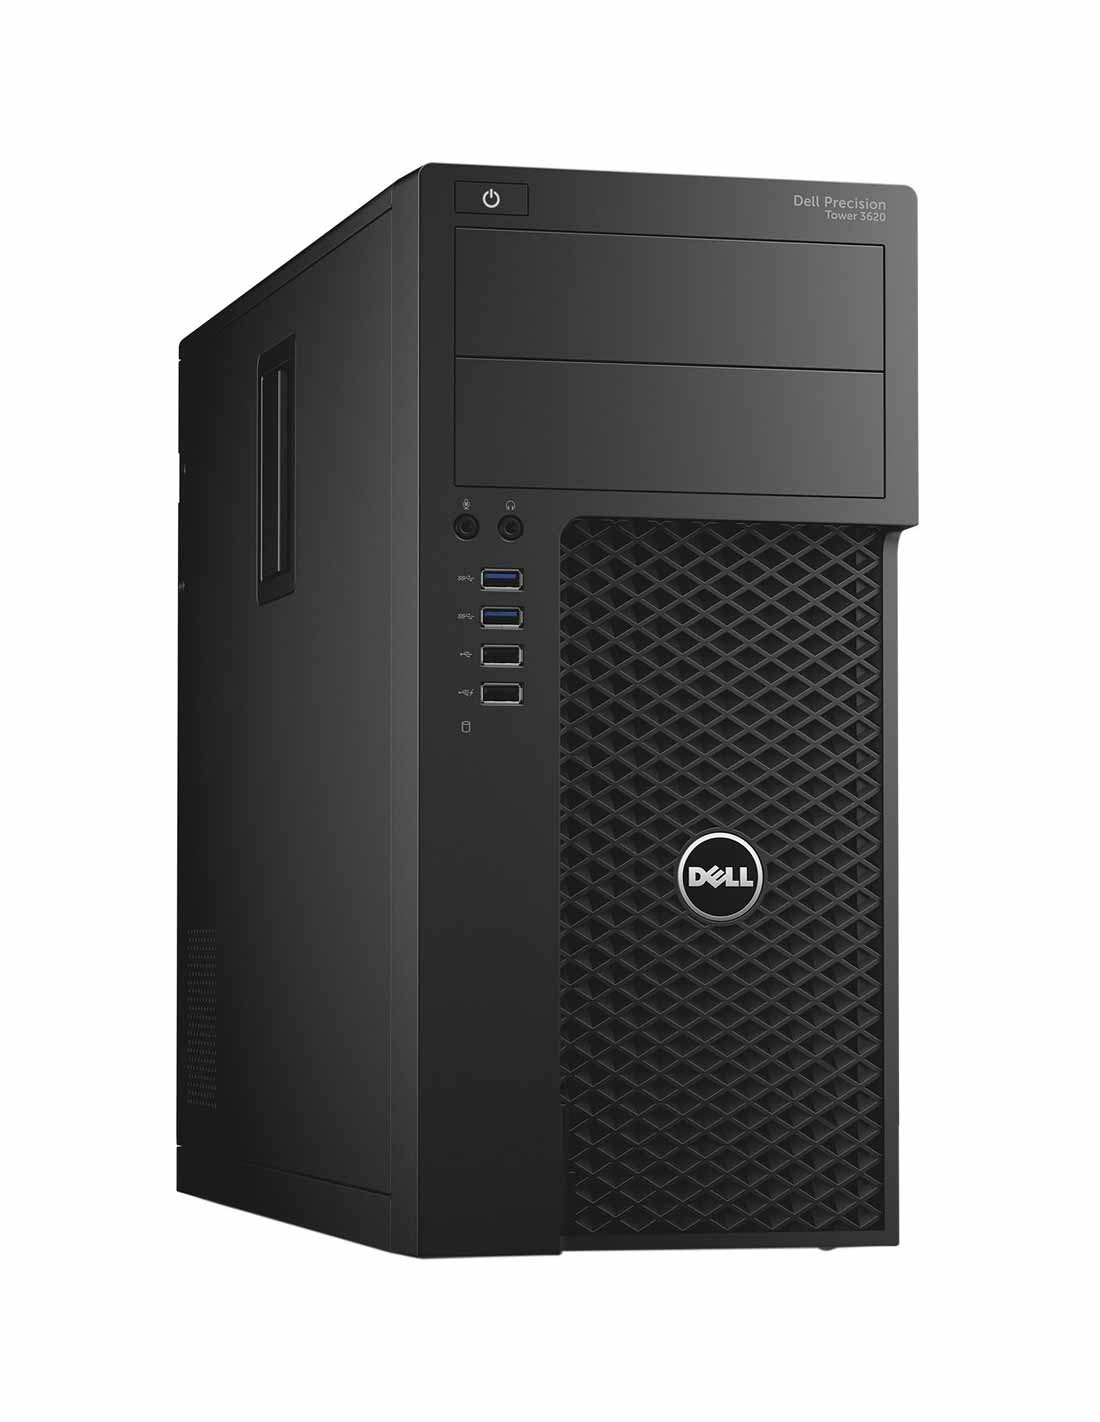 Dell Precision Tower 3620 at cheap price and fast free delivery in Dubai